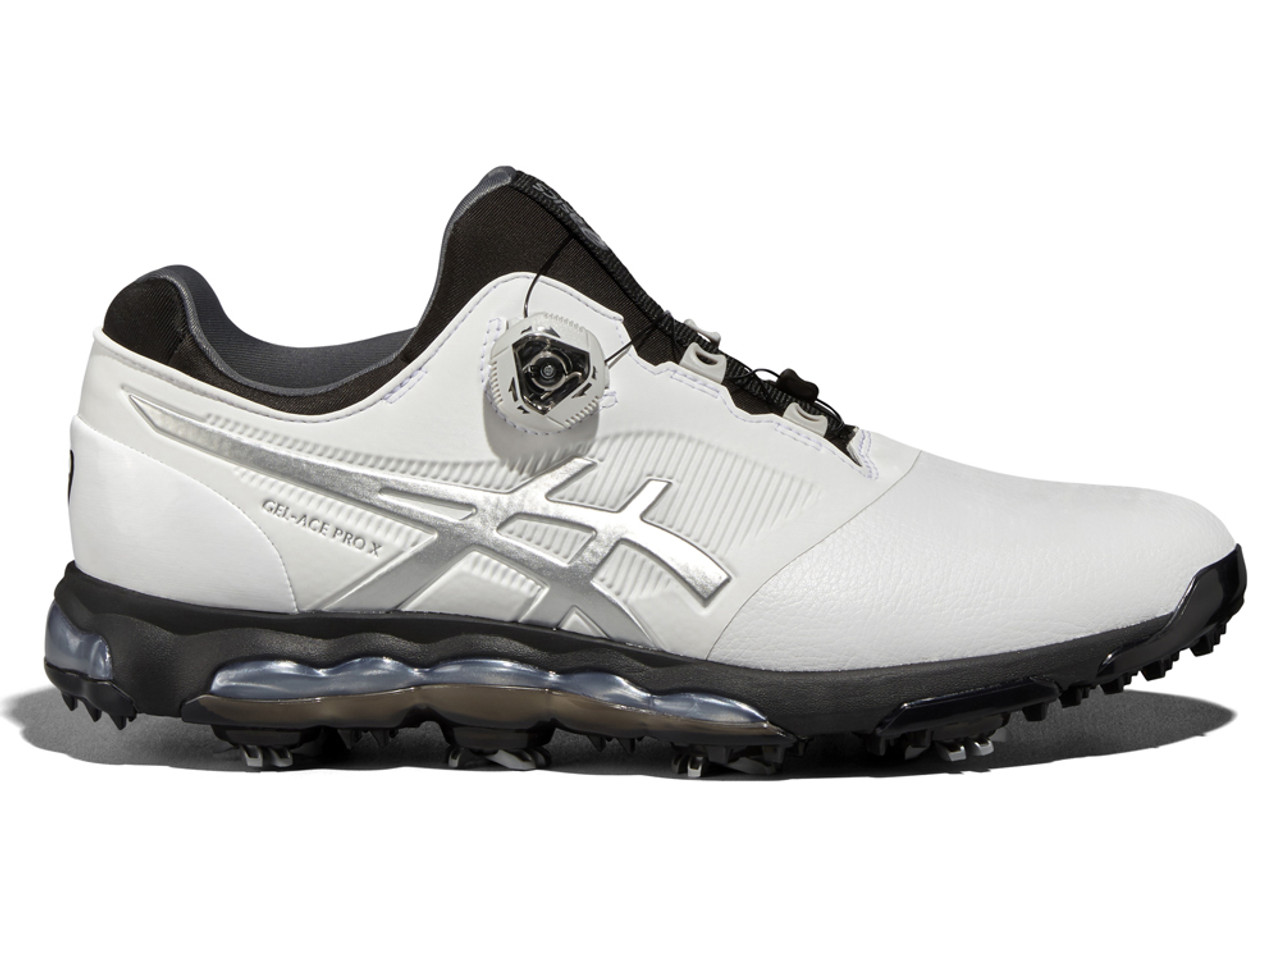 1123c48249d5 Asics Gel Ace Pro X BOA Golf Shoes - White Black Silver - Mens For ...